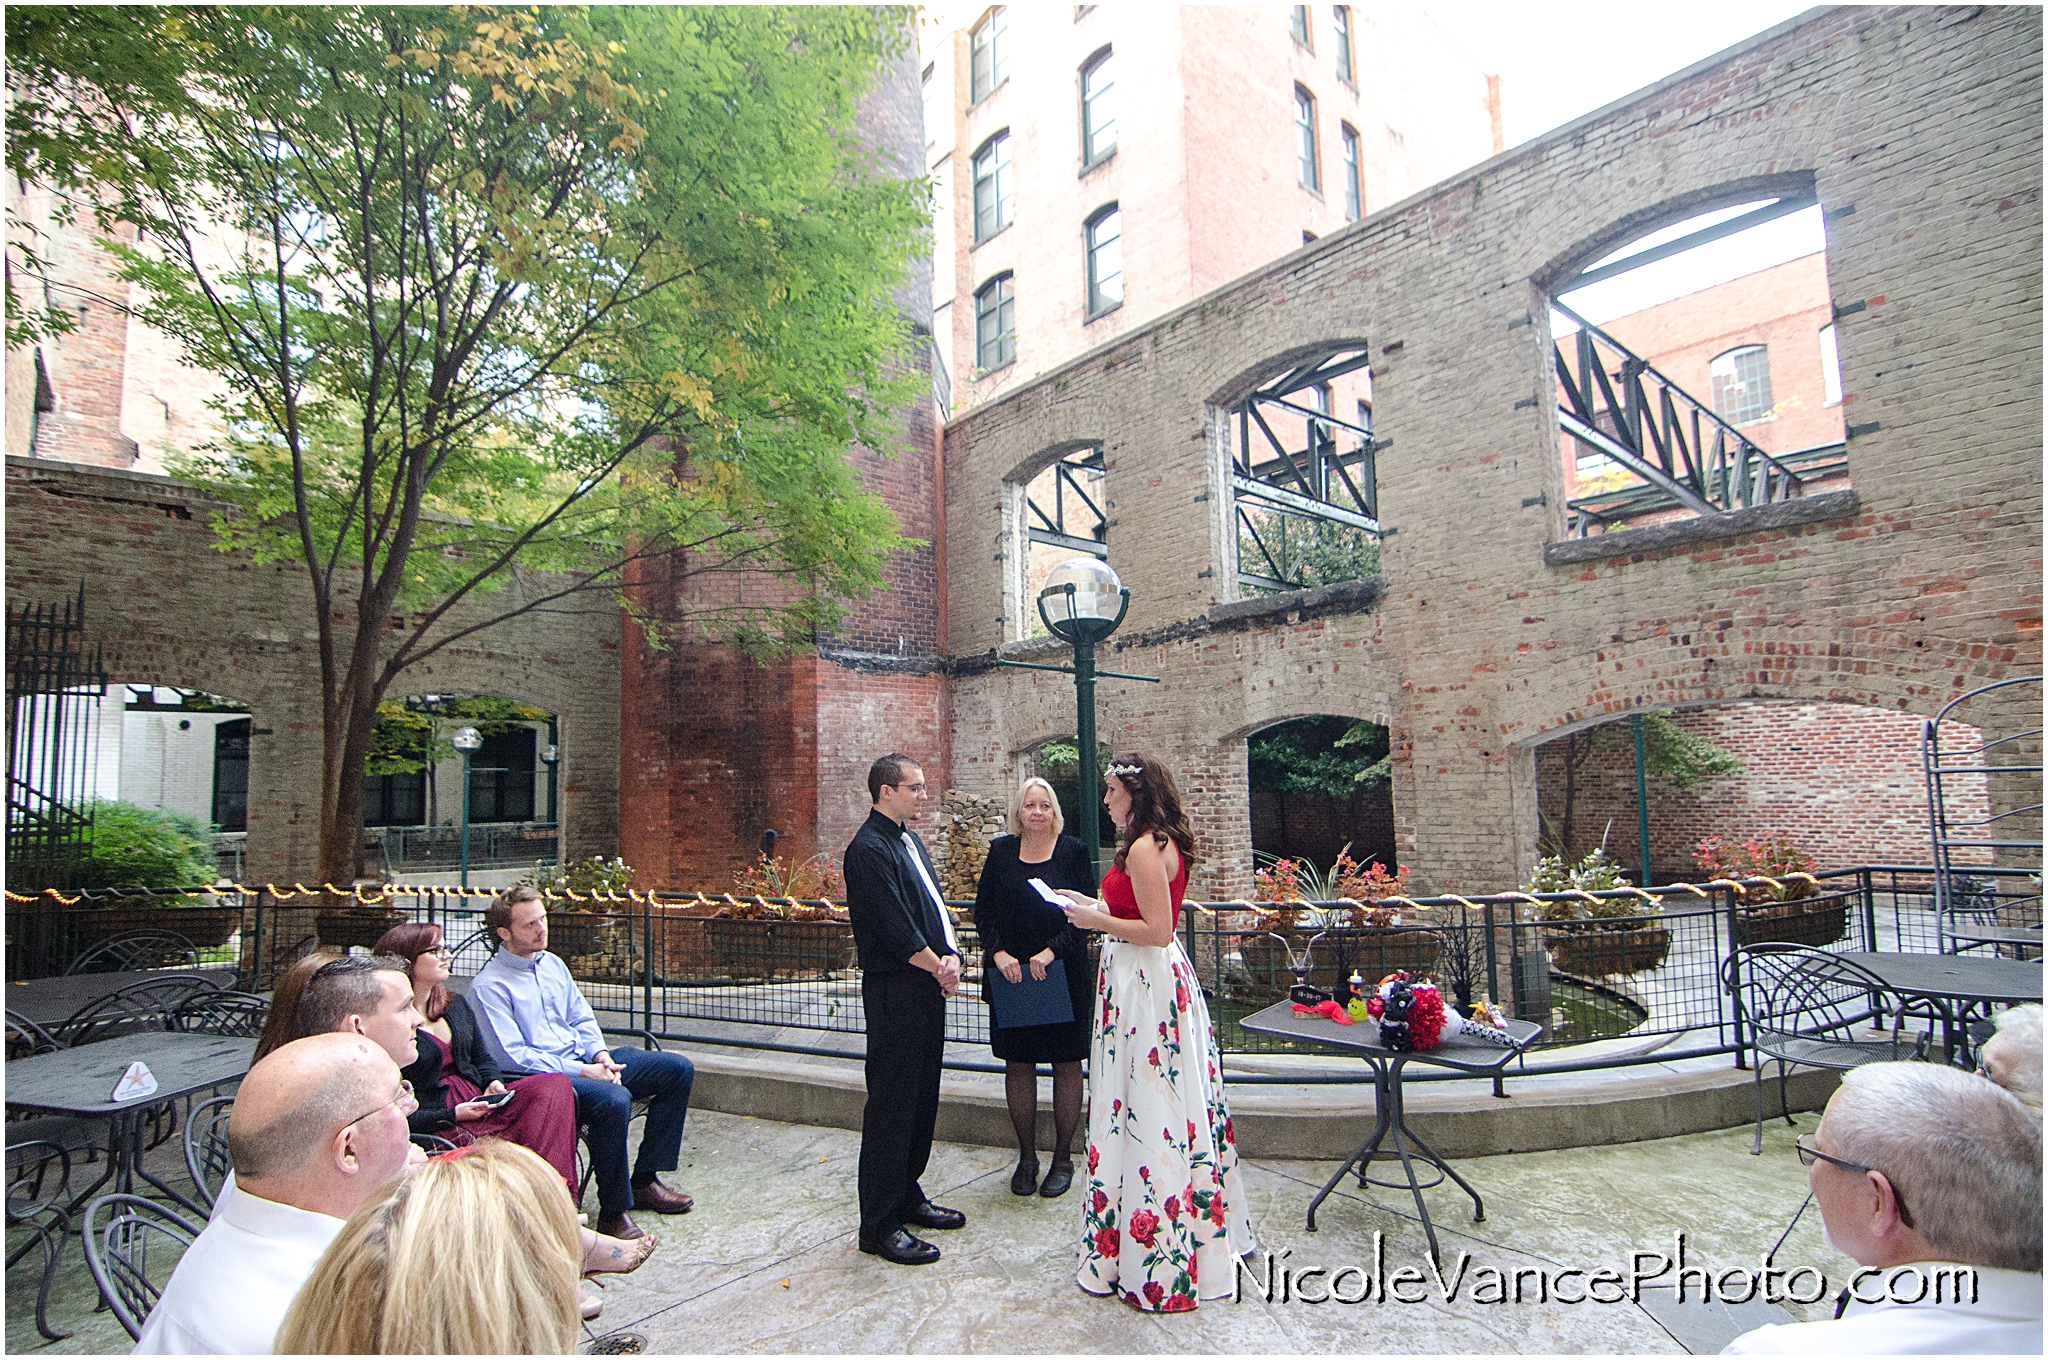 Wedding ceremony at Bookbinders on the back patio.